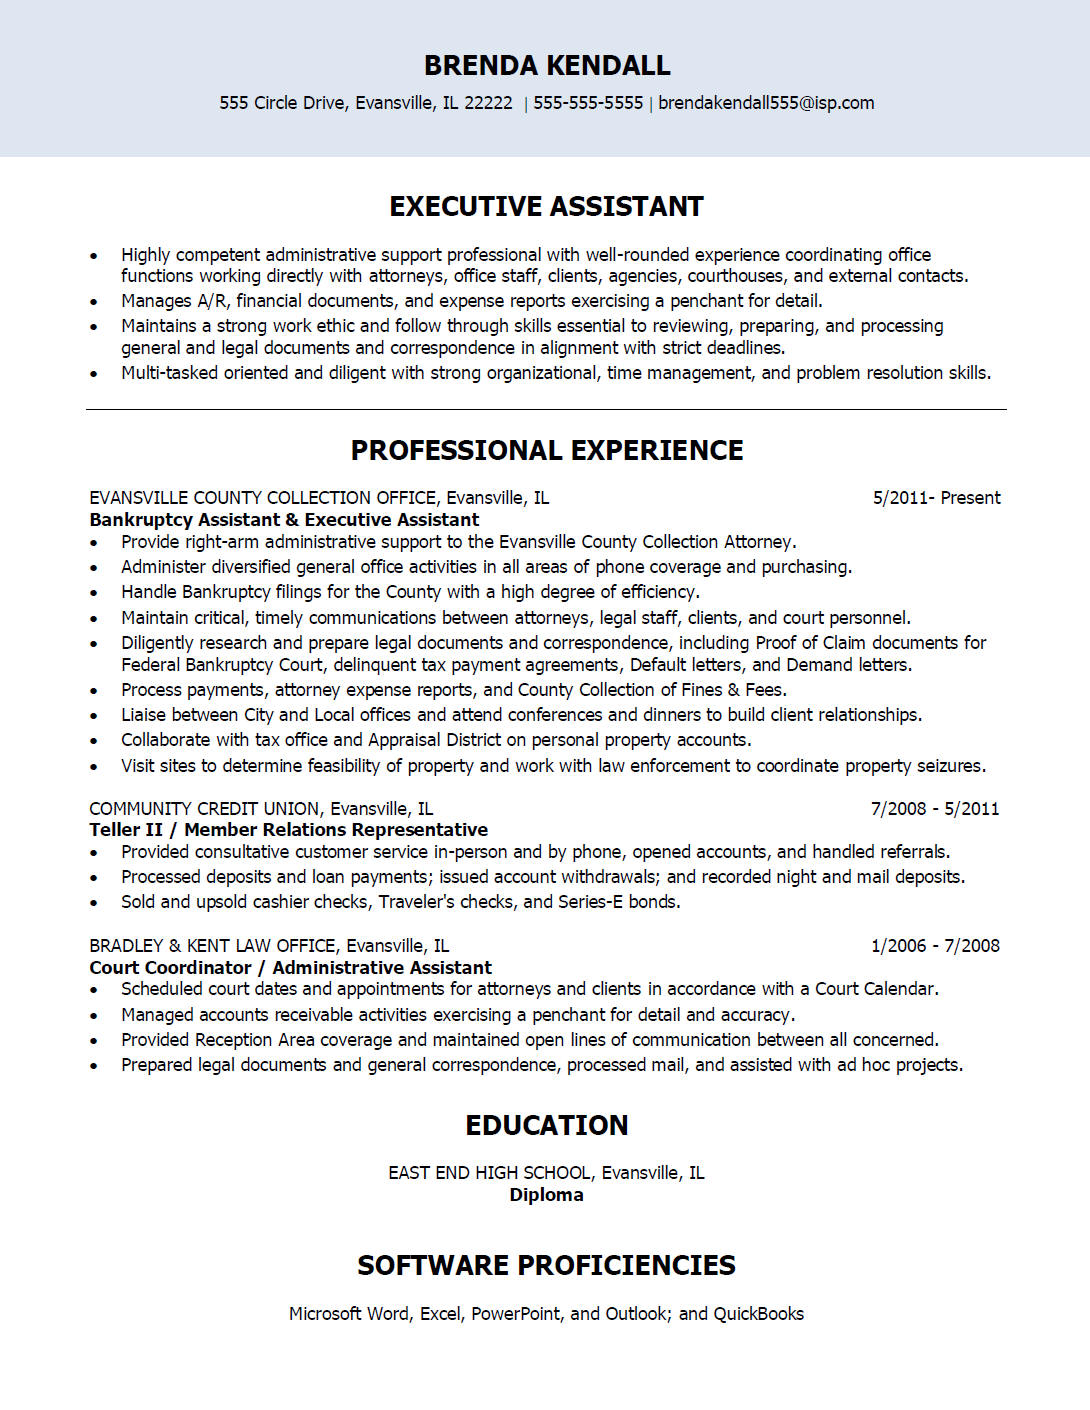 Resume Words Excel Resume Makeovers  Let Us Transform Your Resume Free Resume Cover Letter Word with Sample Resume Education Word  Resume Picture Pdf